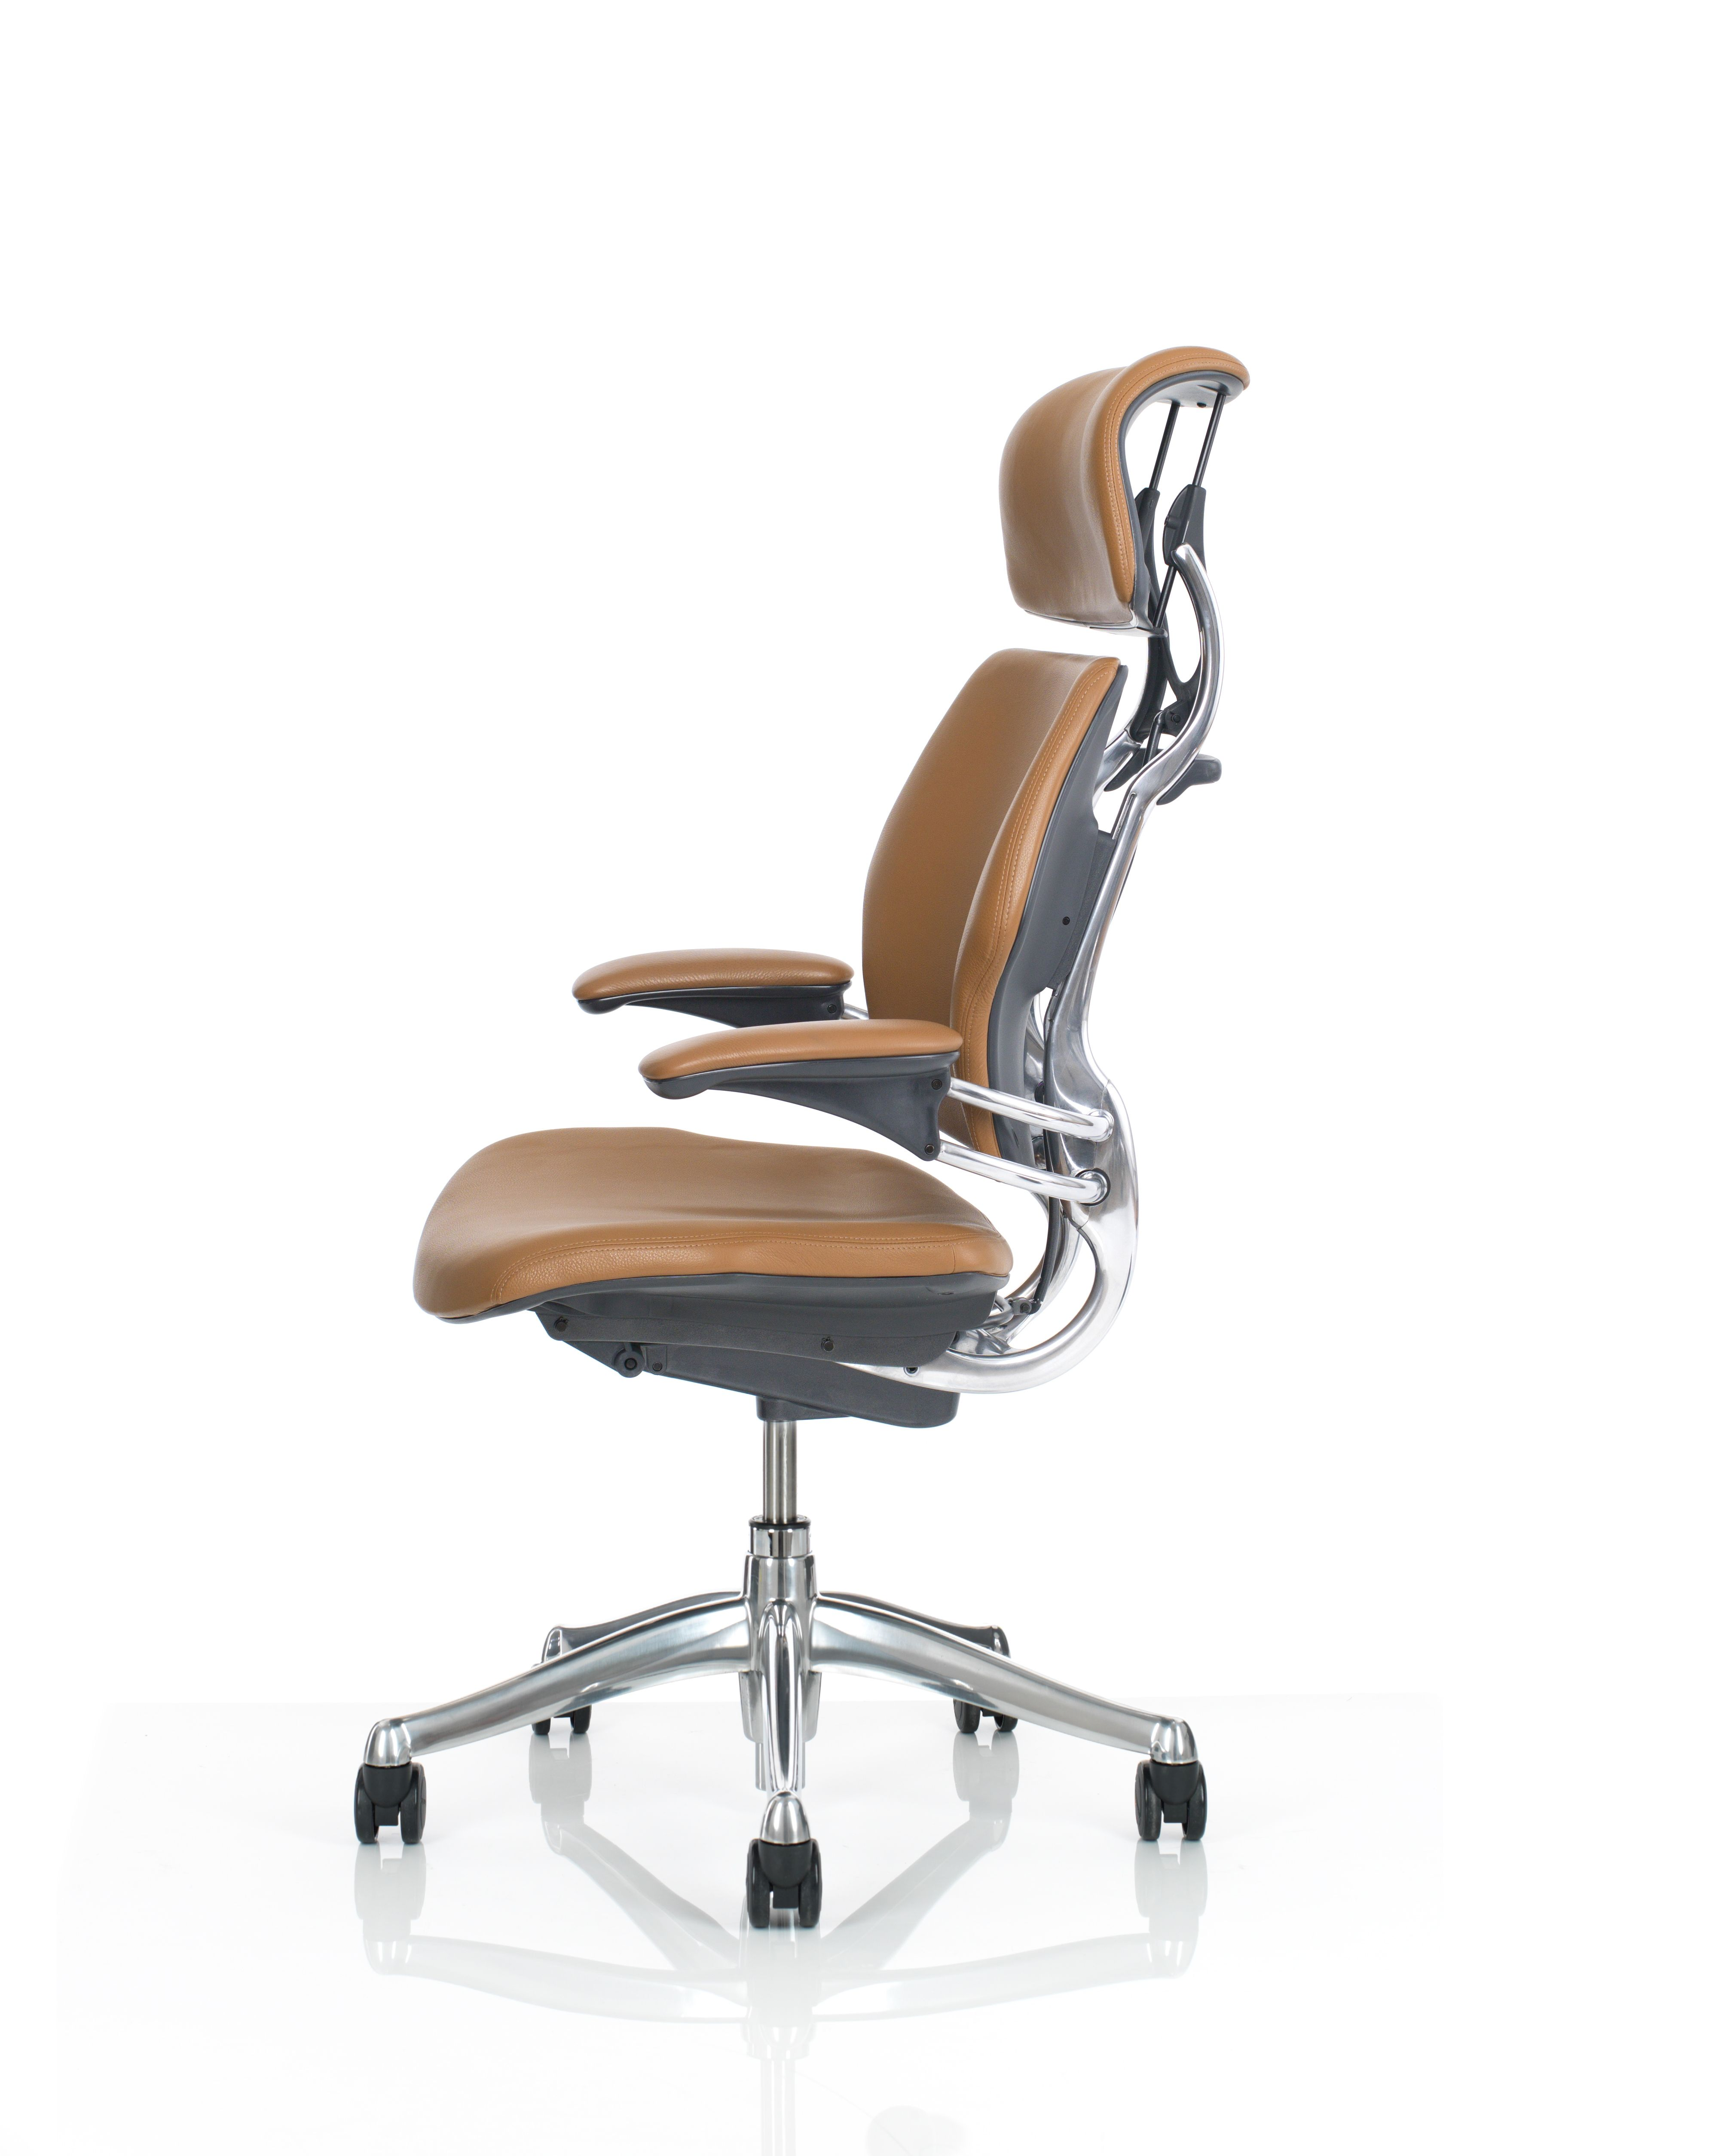 natural office black herman furniture freedom decor chair computer room elegant humanscale miller your idea for